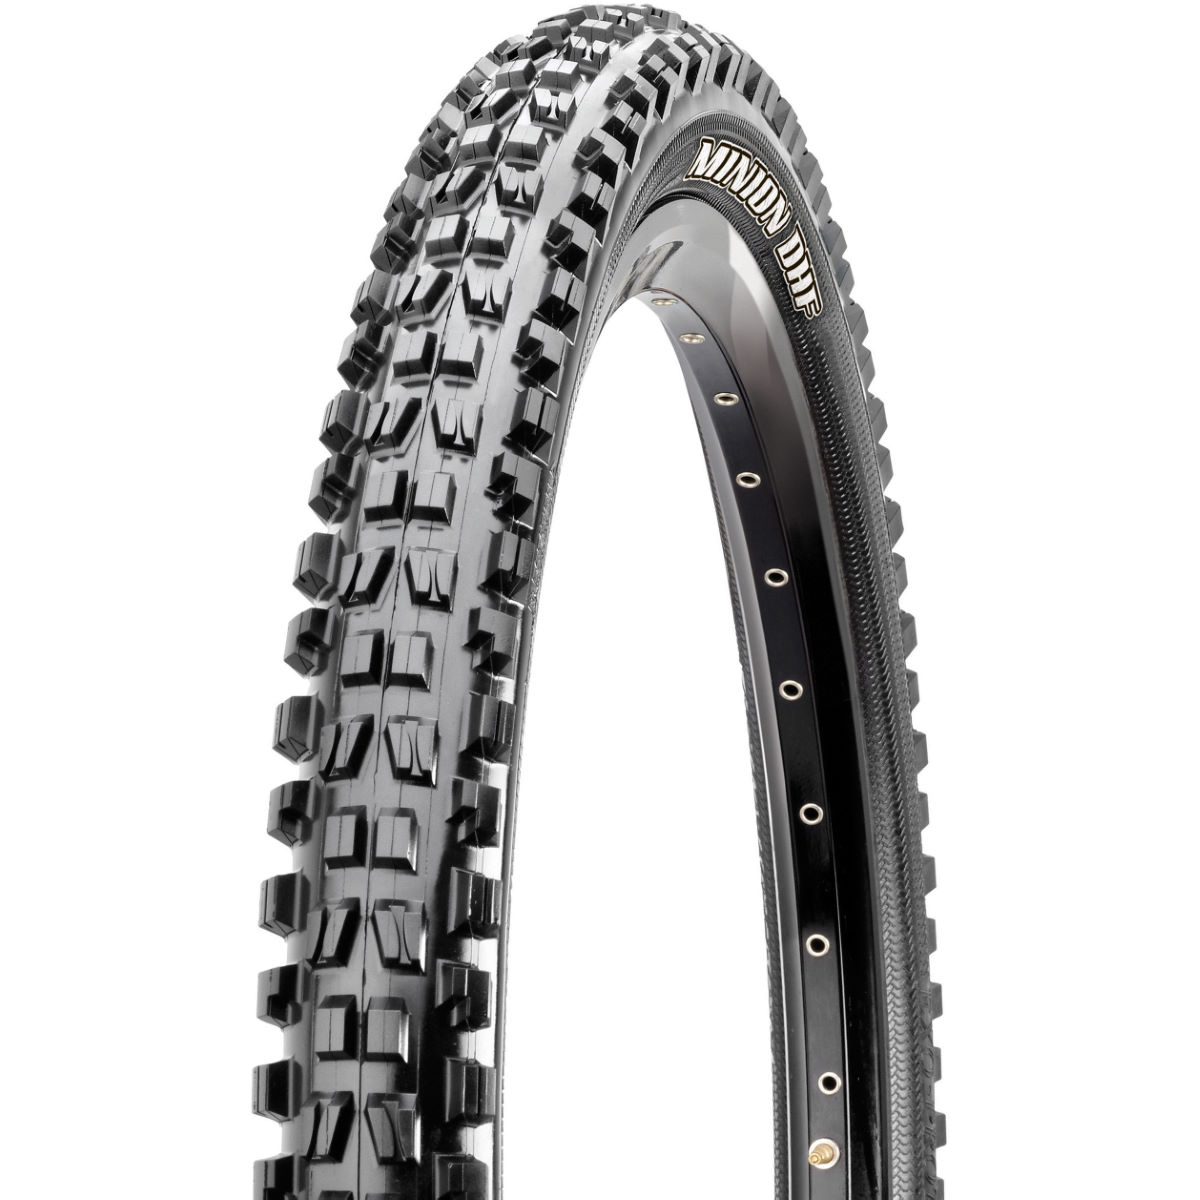 Maxxis Maxxis Minion DHF Wide Trail - 3C - EXO - TR   Tyres